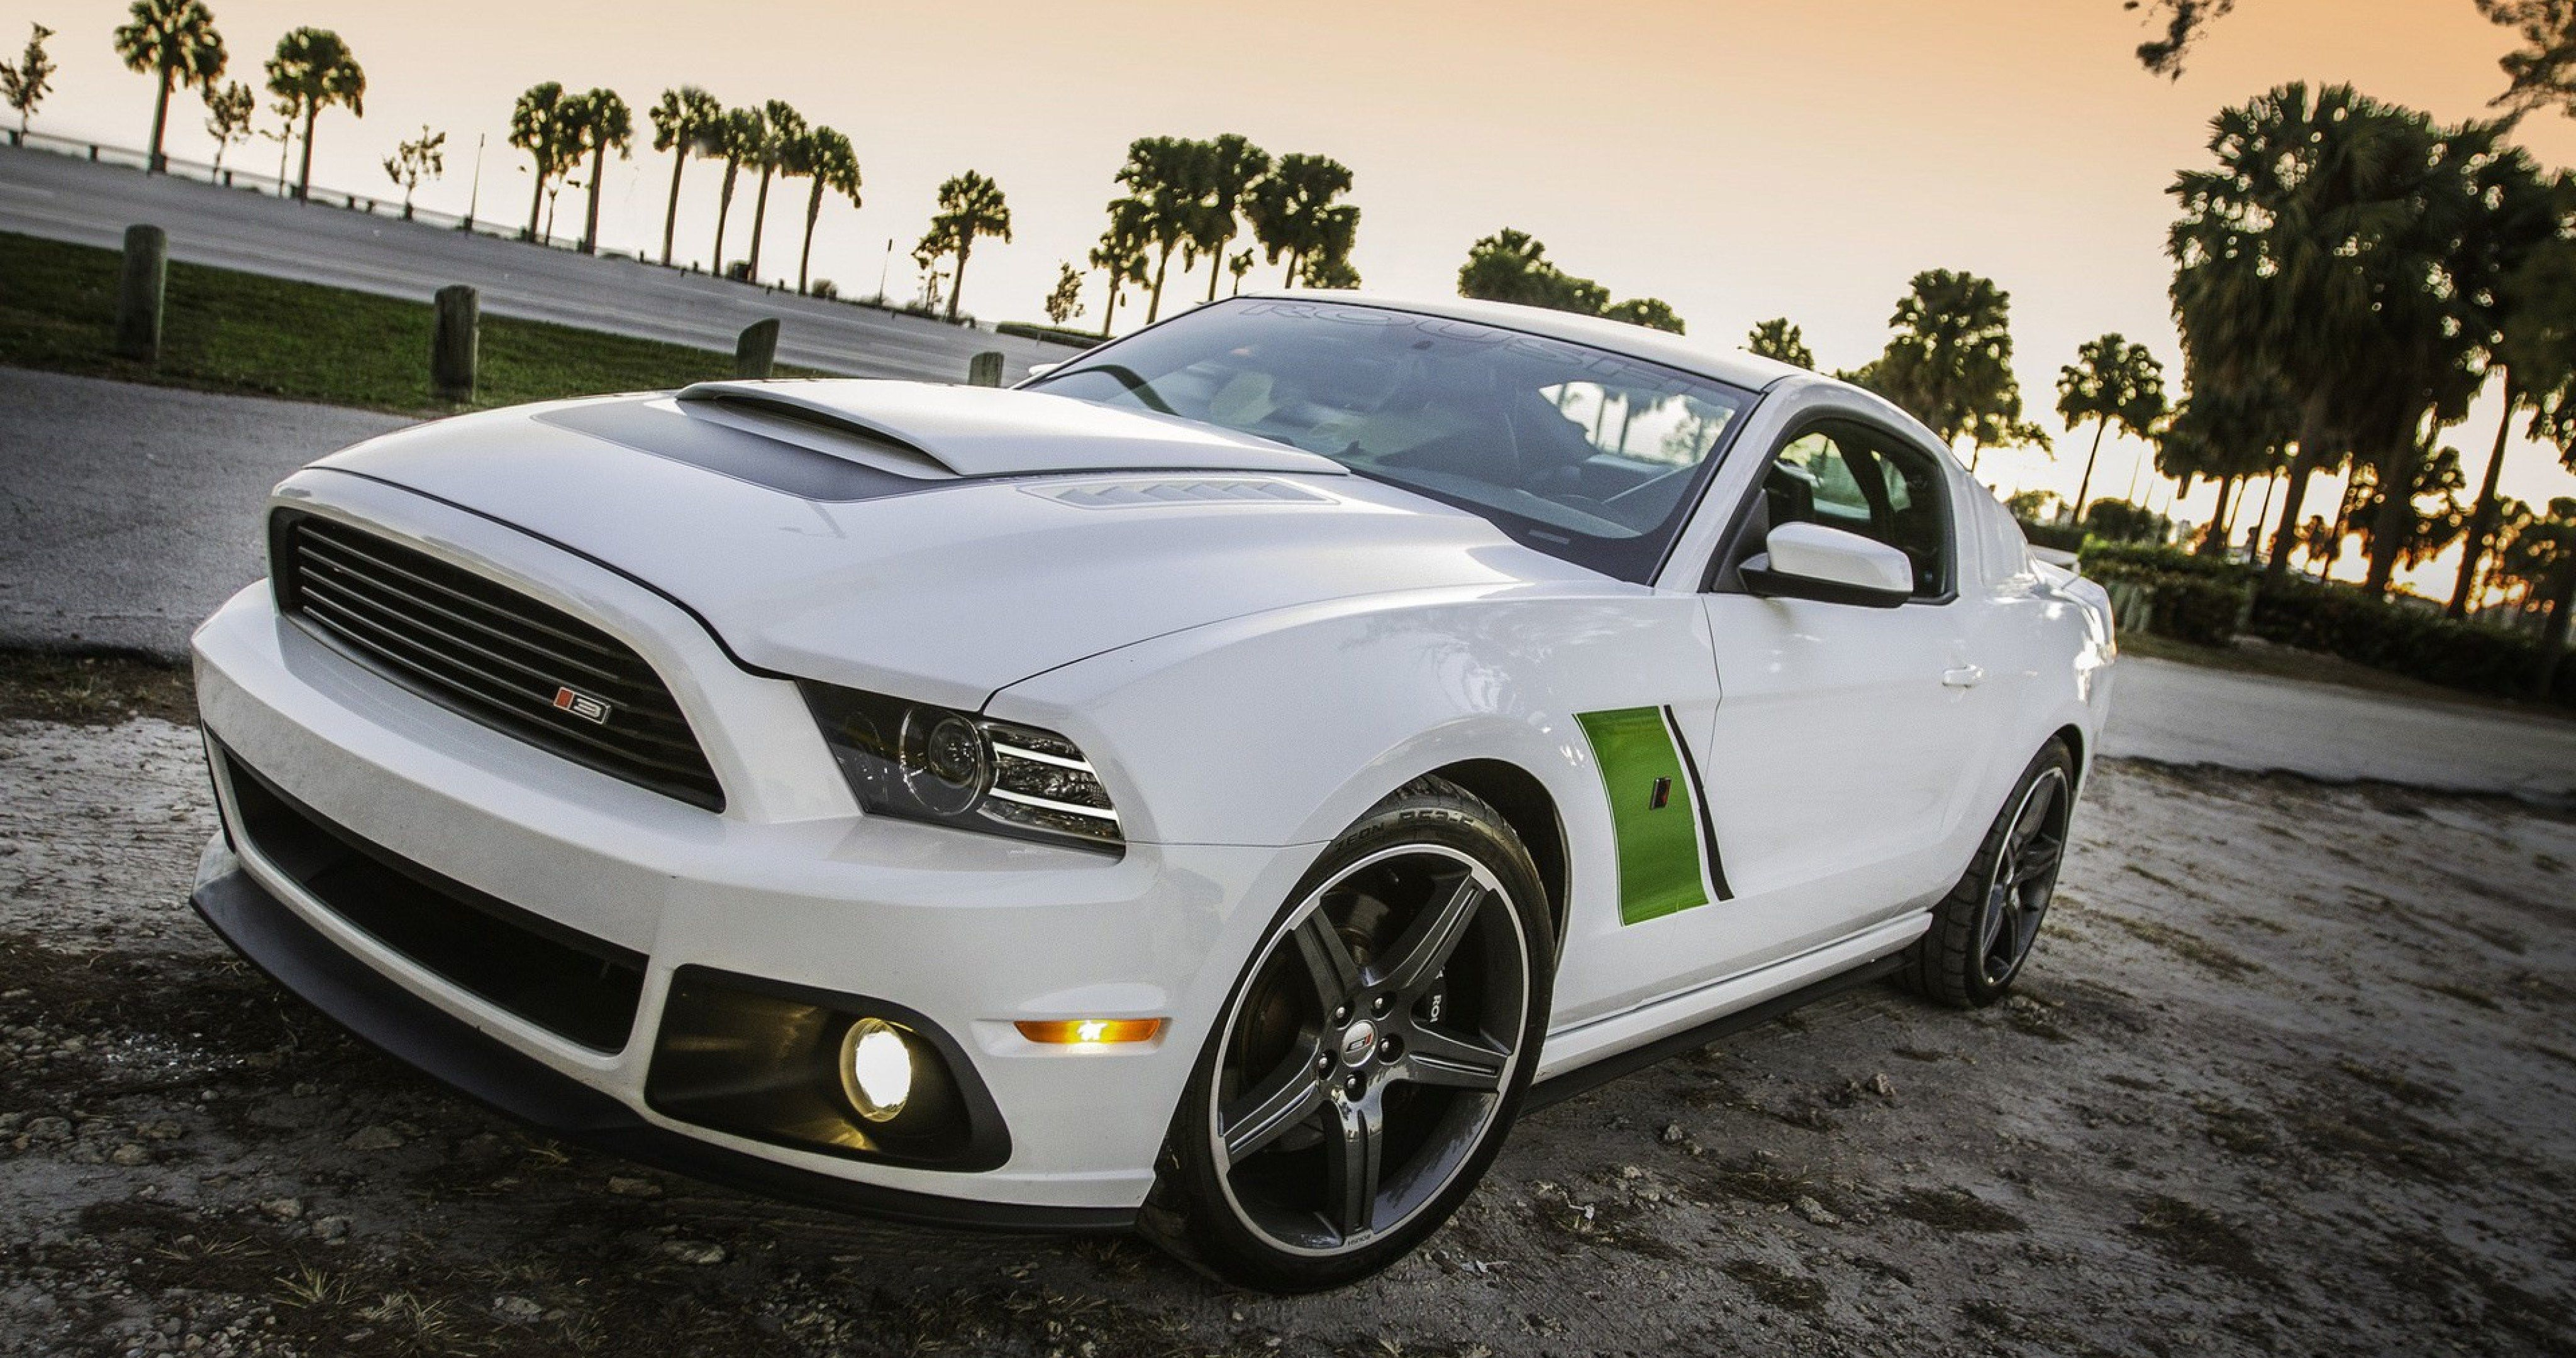 Ford Mustang Roush Ultra Hd Wallpaper Ololoshenka